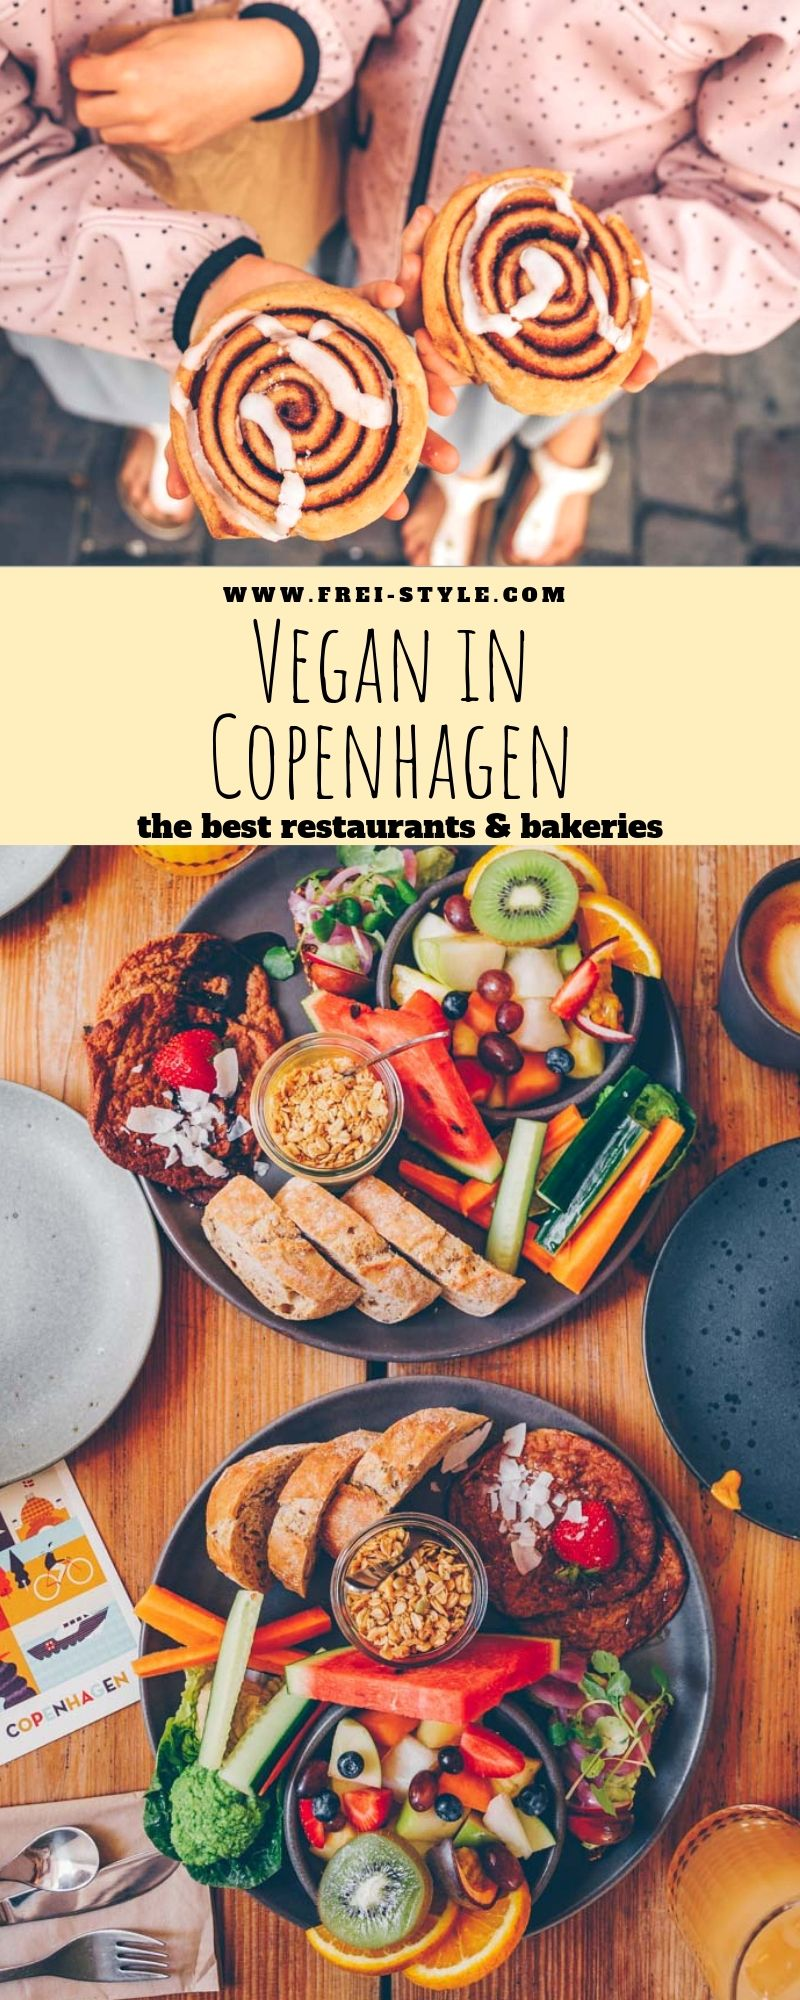 Vegan in Copenhagen